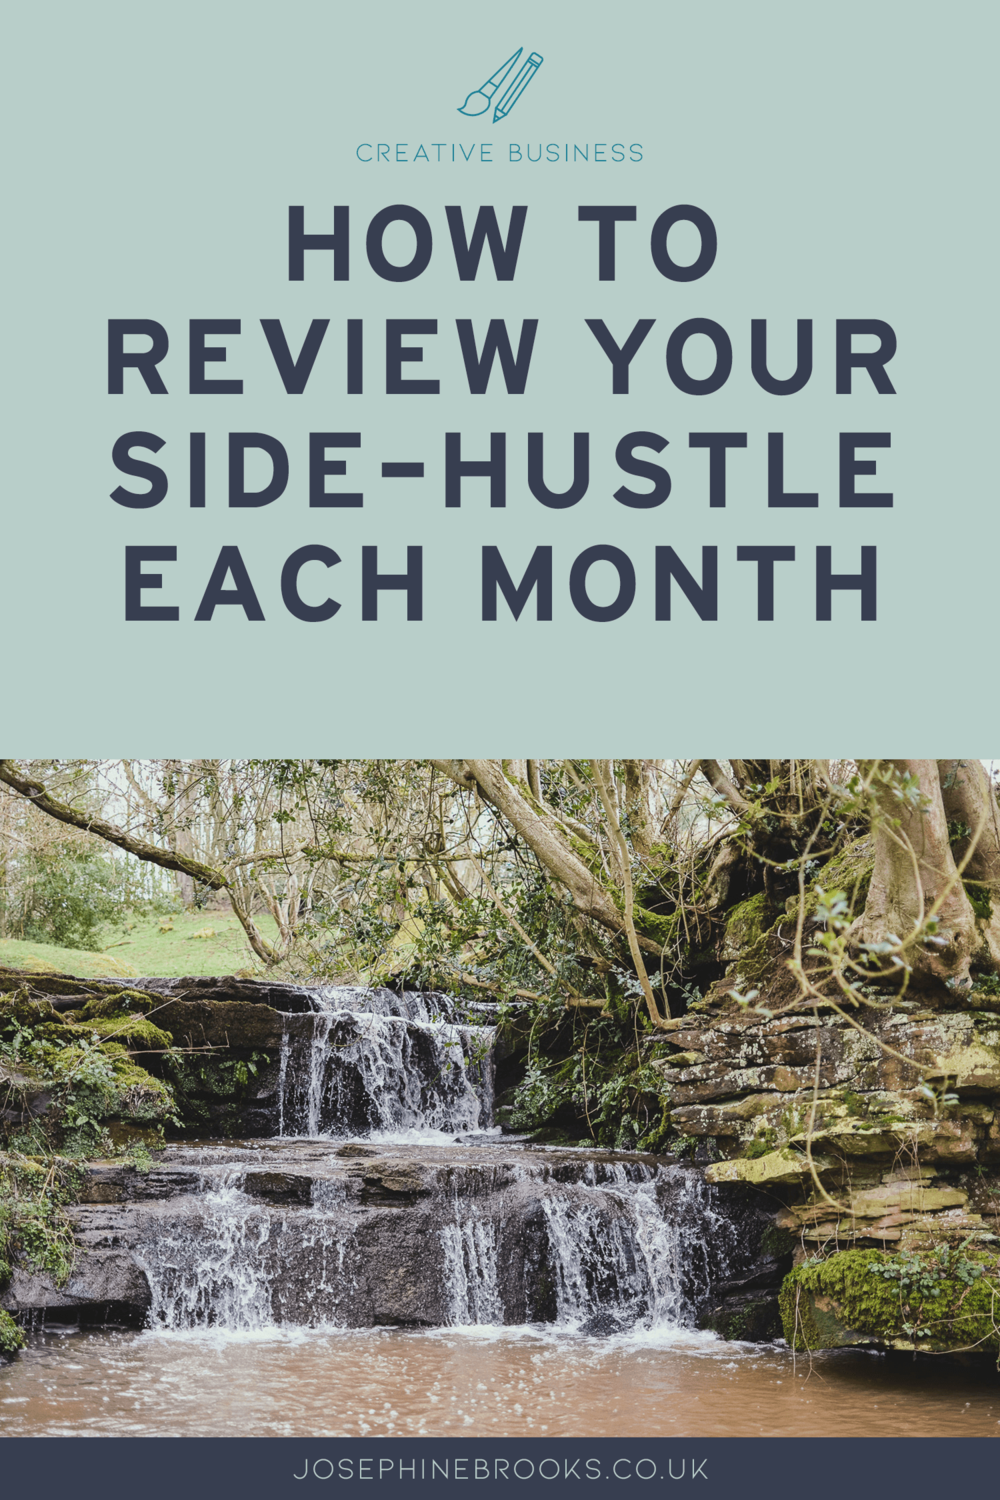 How to review your creative business goals and progress at the end of each month